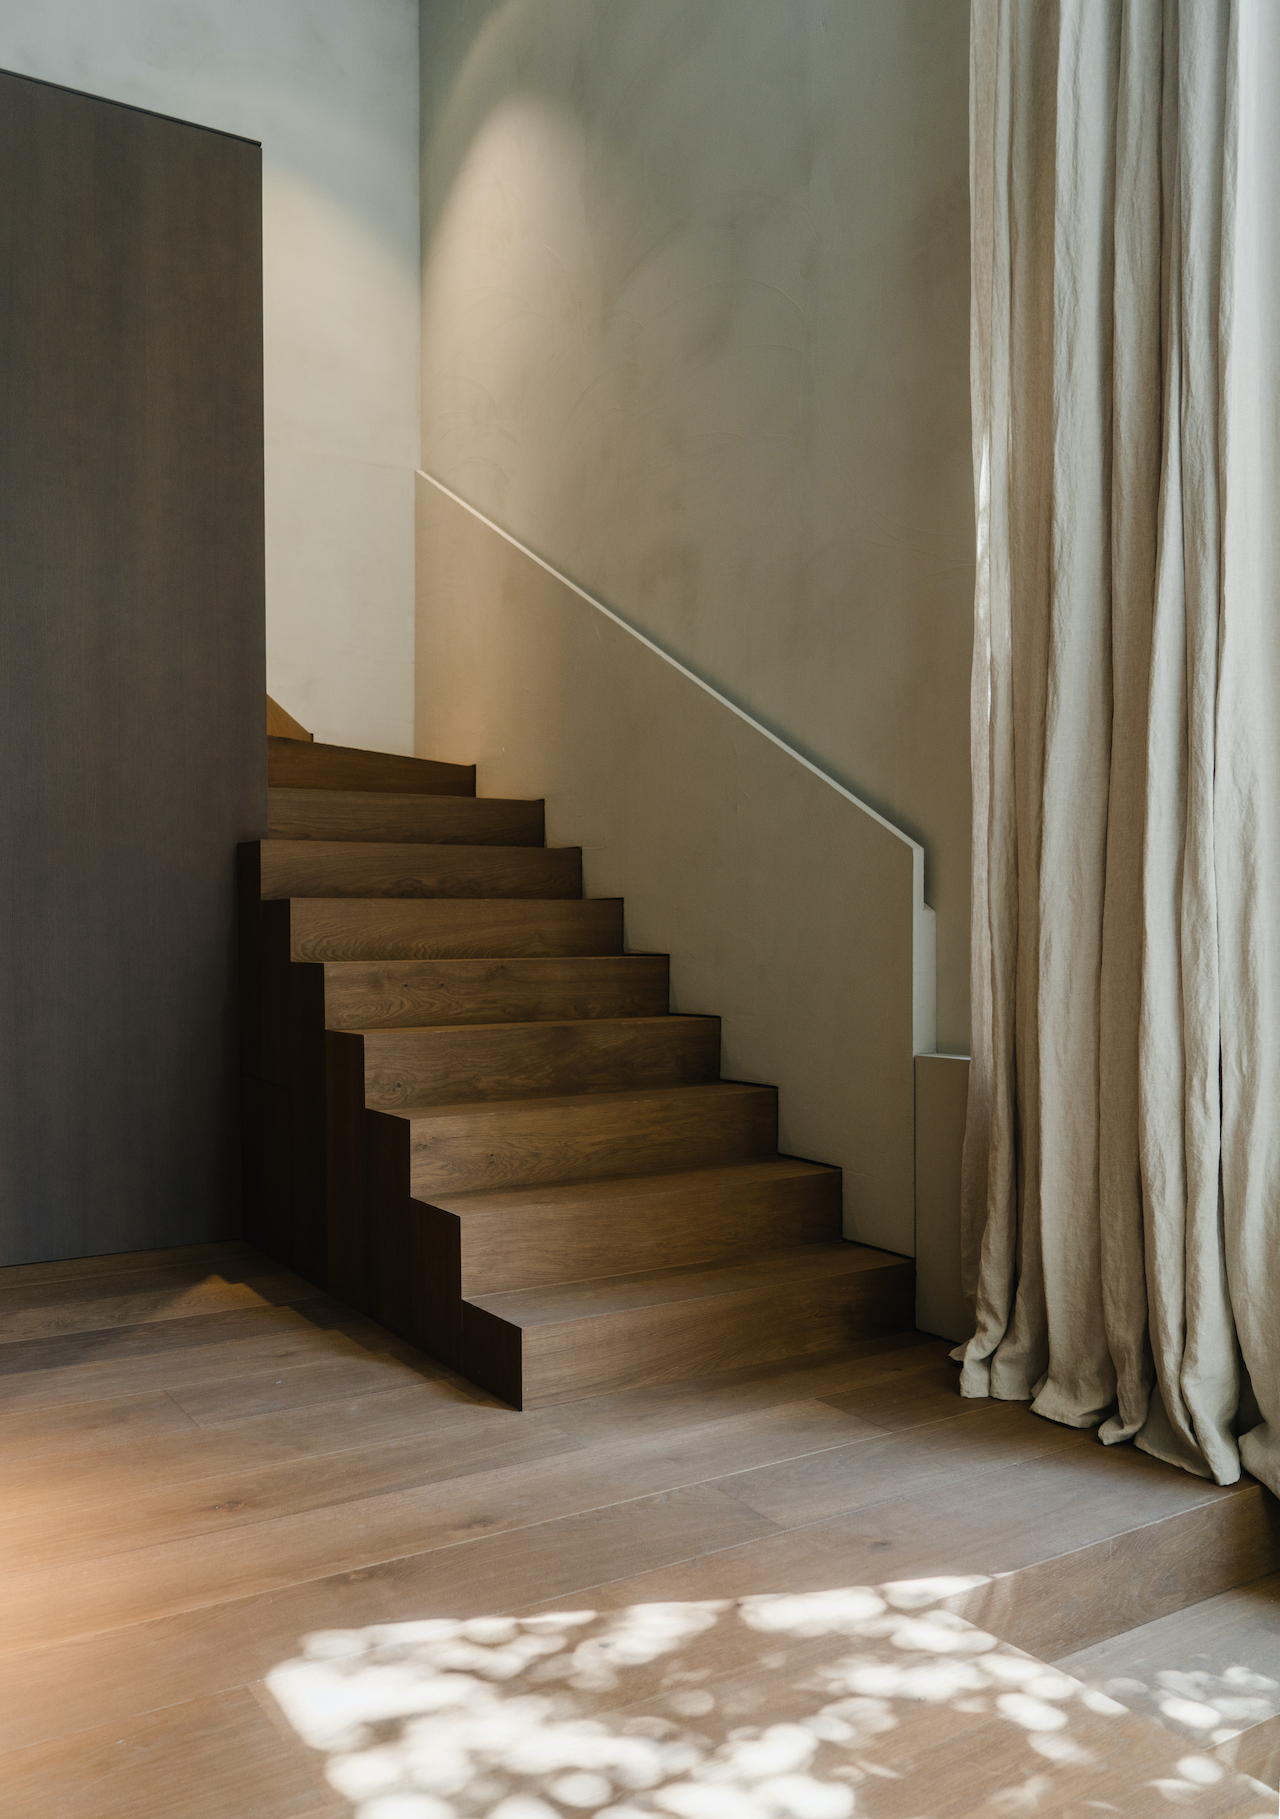 Staircase with curtain